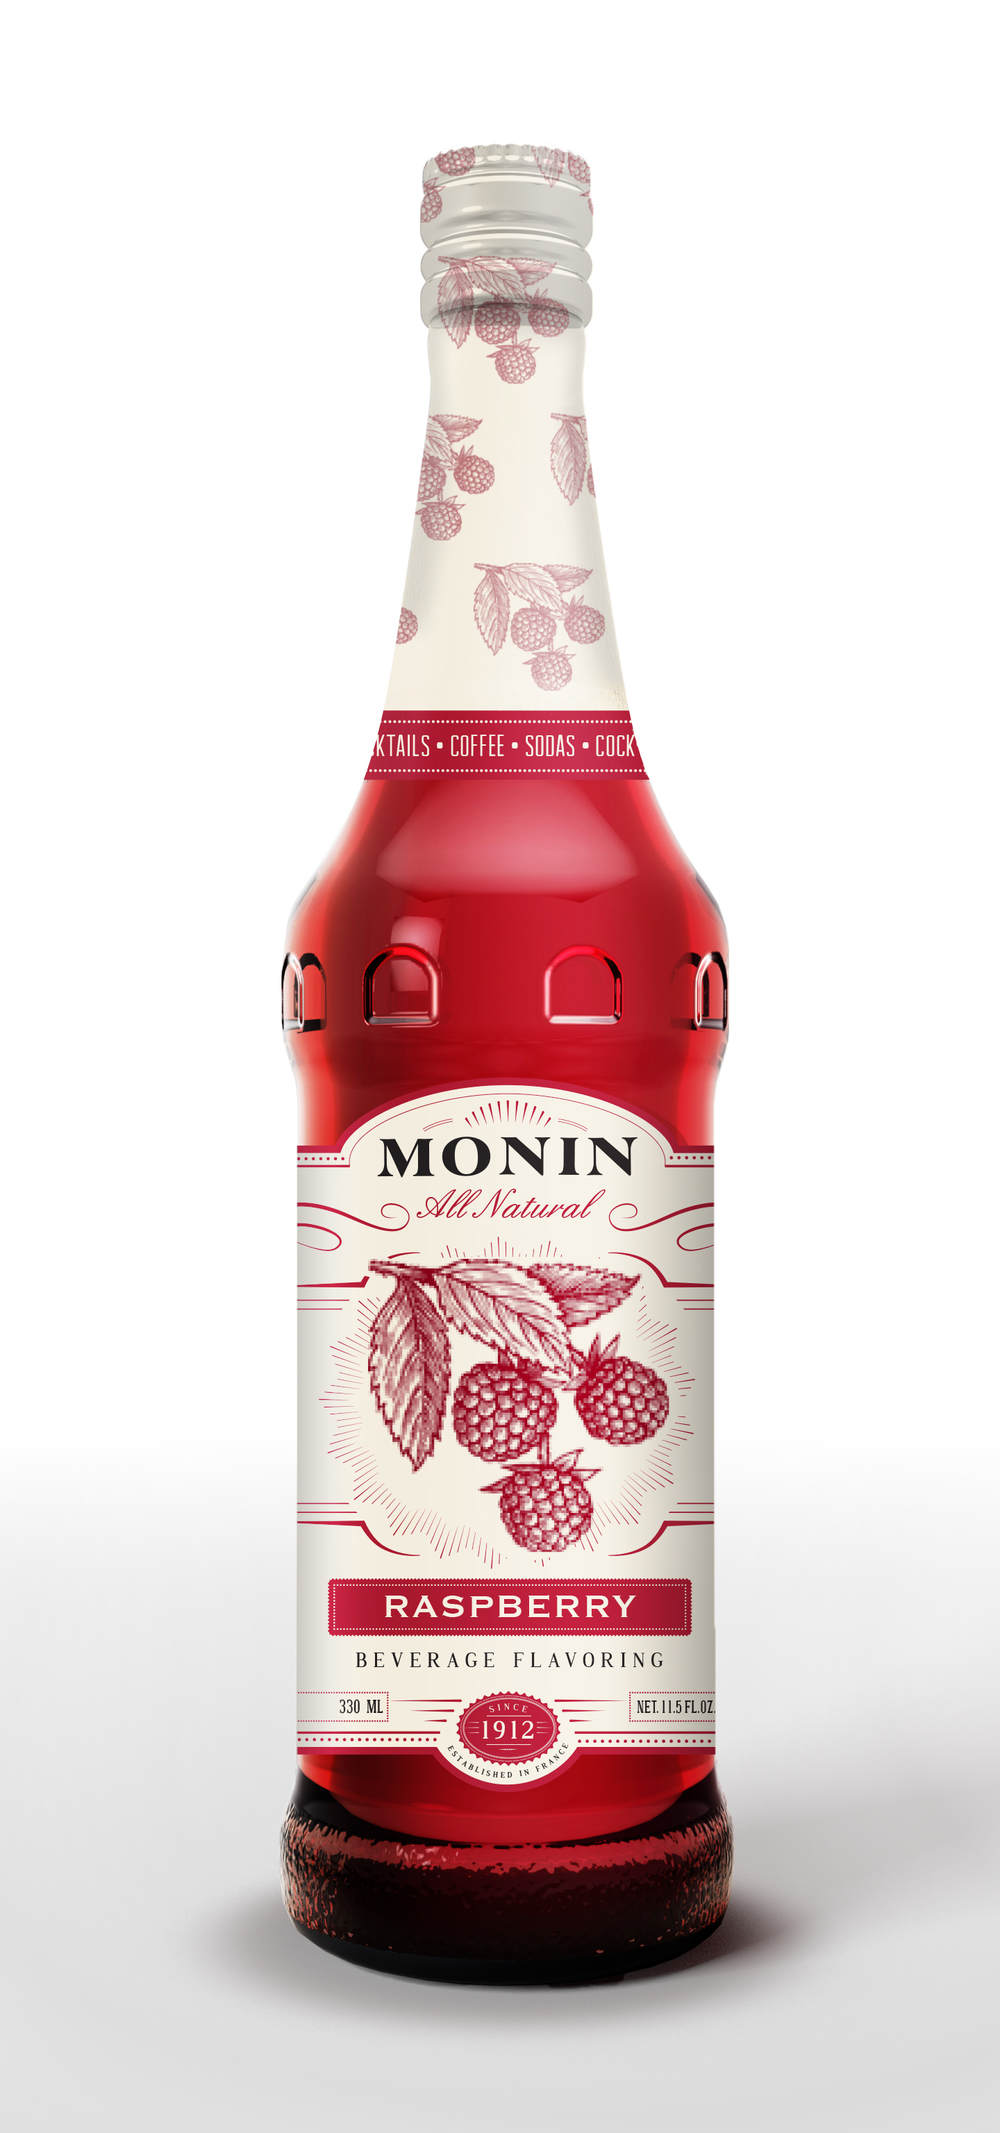 Monin_Bottle_Mockup_Raps4.jpg